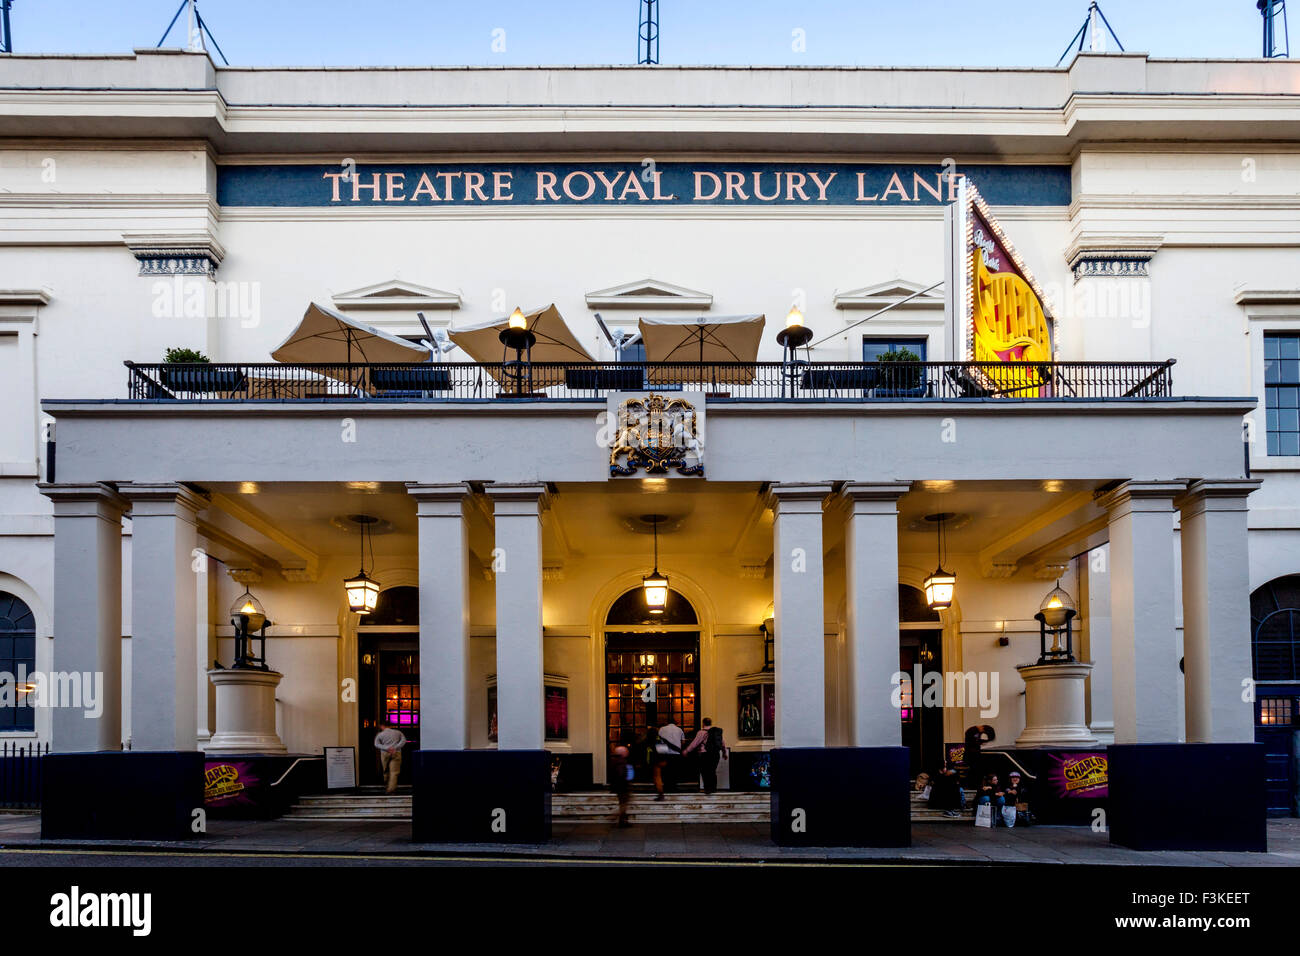 The Theatre Royal Drury Lane, Covent Garden, London, UK Stock Photo